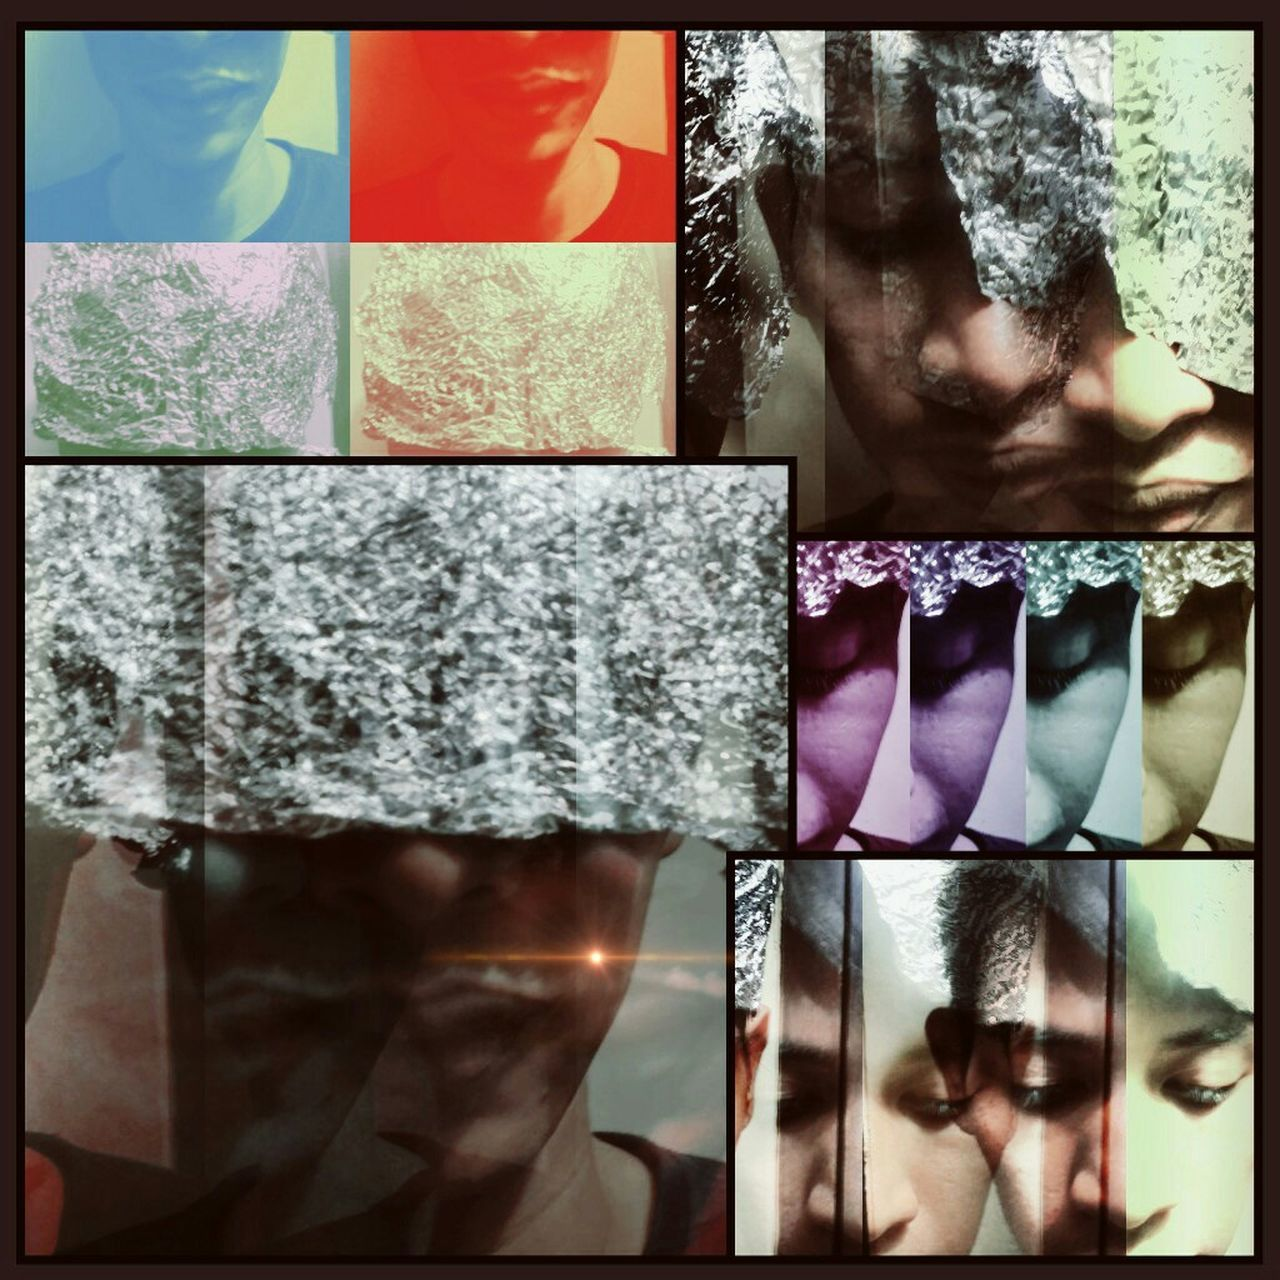 collage, multi colored, variation, multiple image, indoors, one person, close-up, real people, bathroom, day